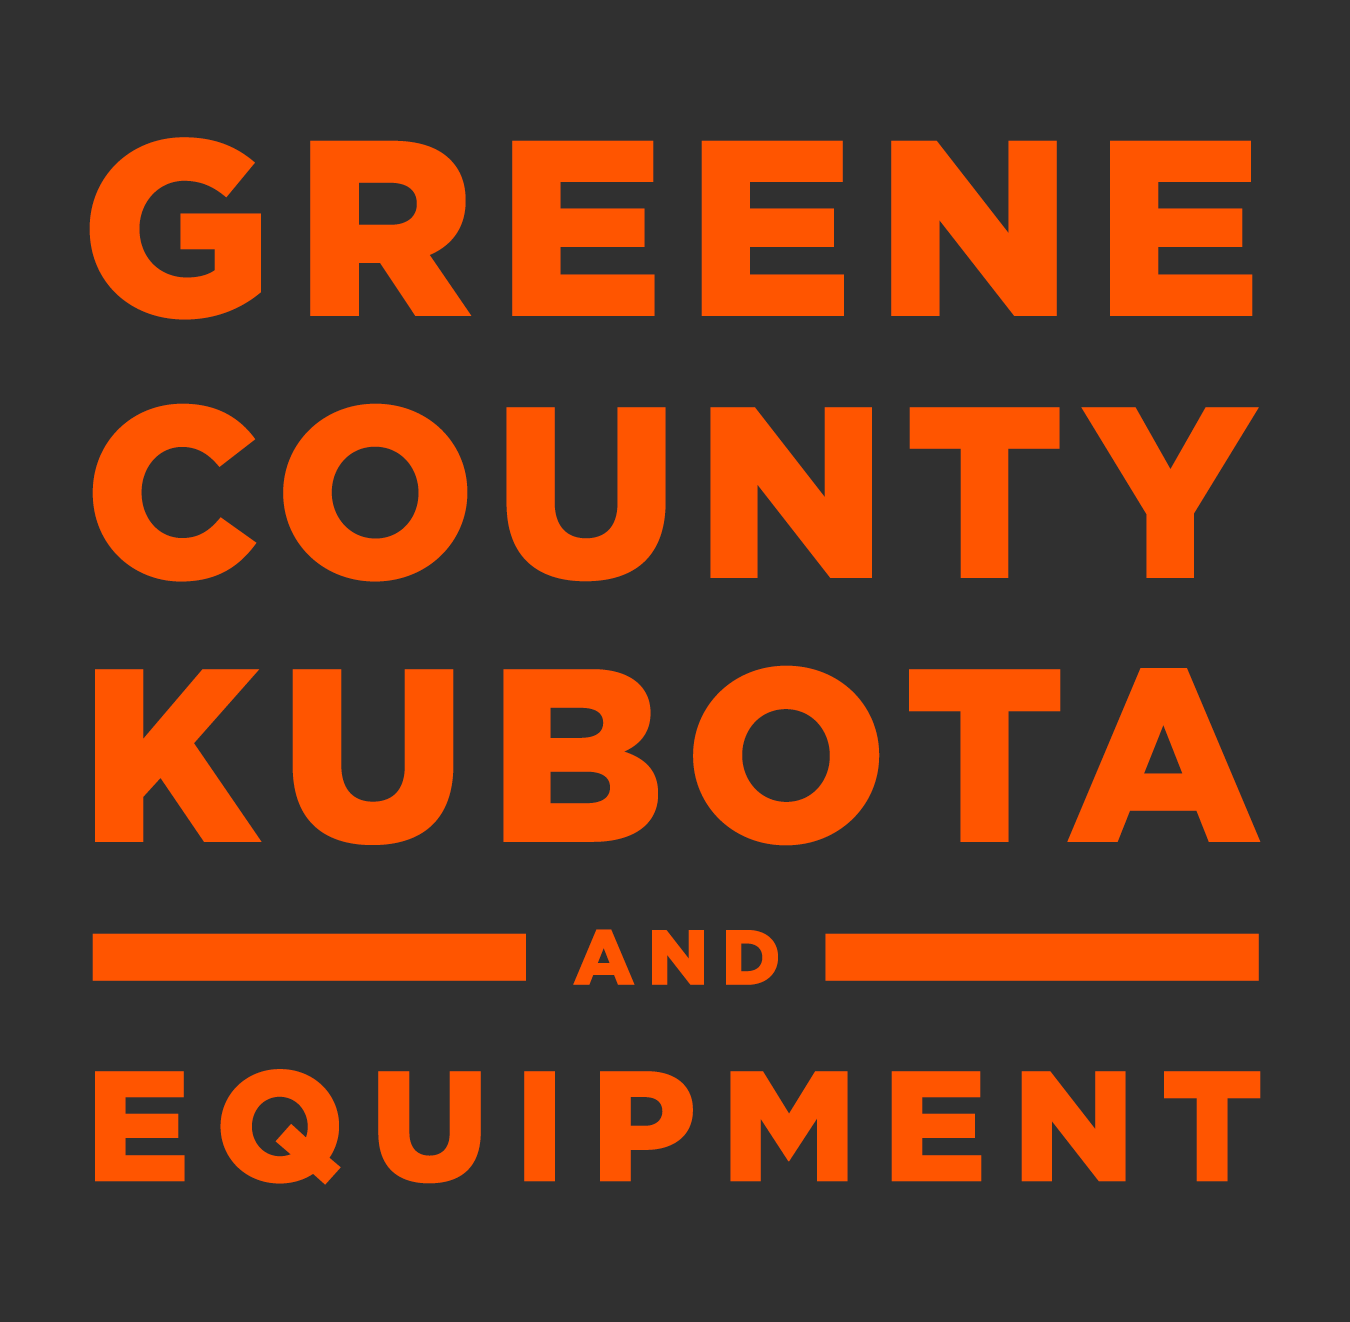 Greene County Kubota